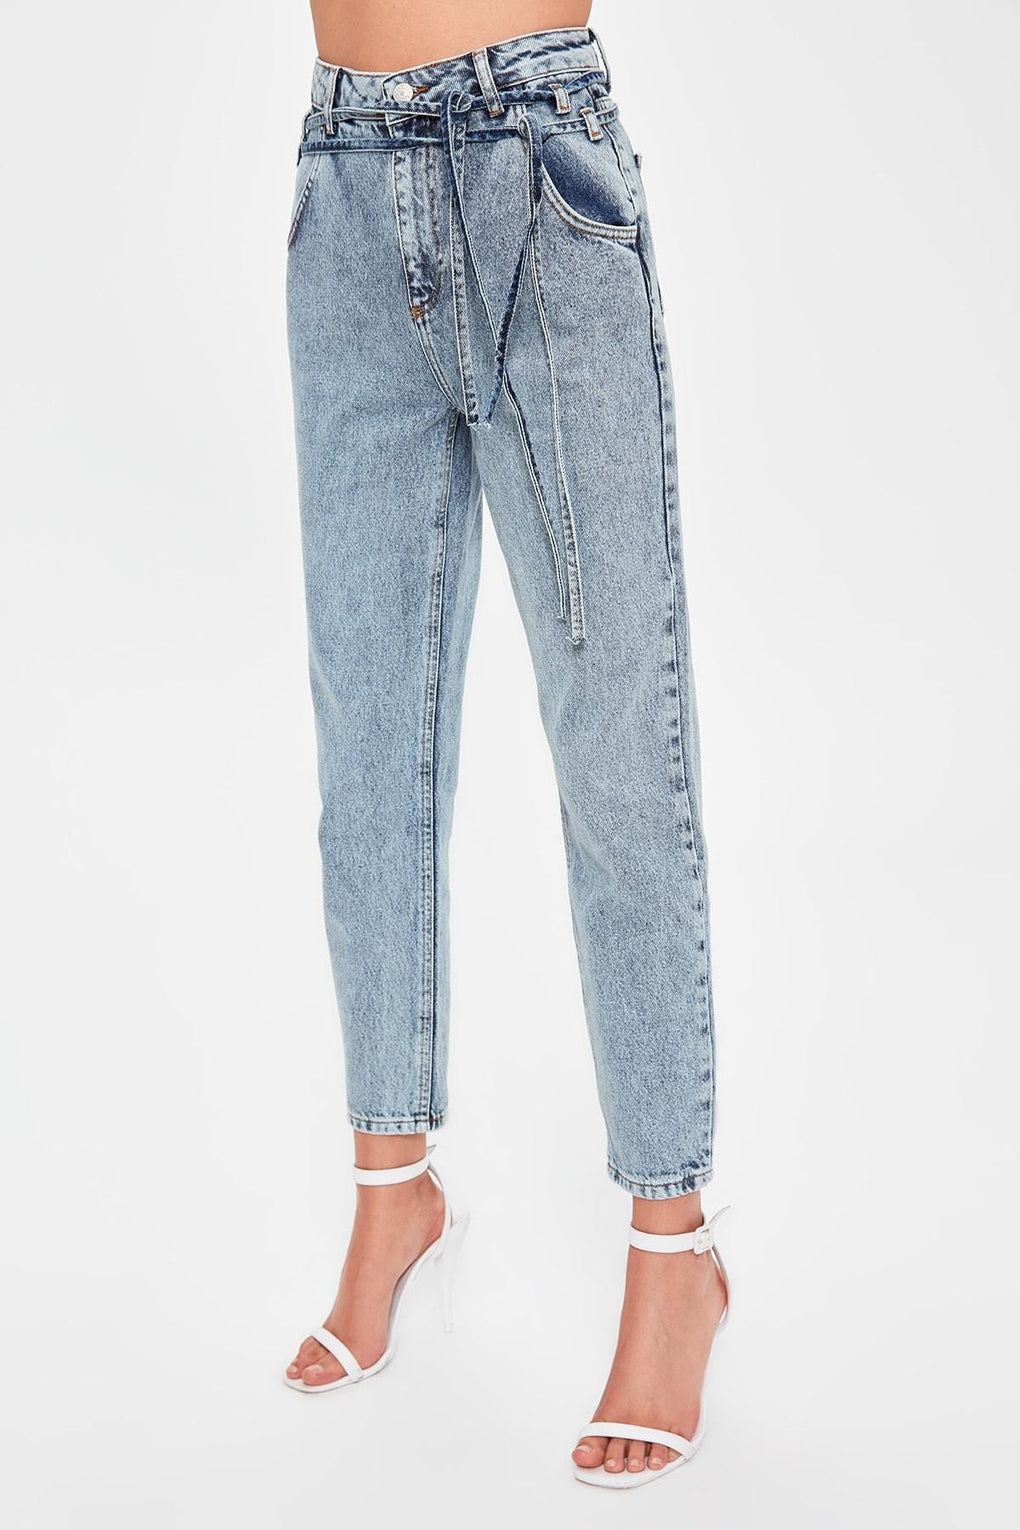 ,klozetstyle-com,Lacing Blue Detailed High Bel Mom Jeans